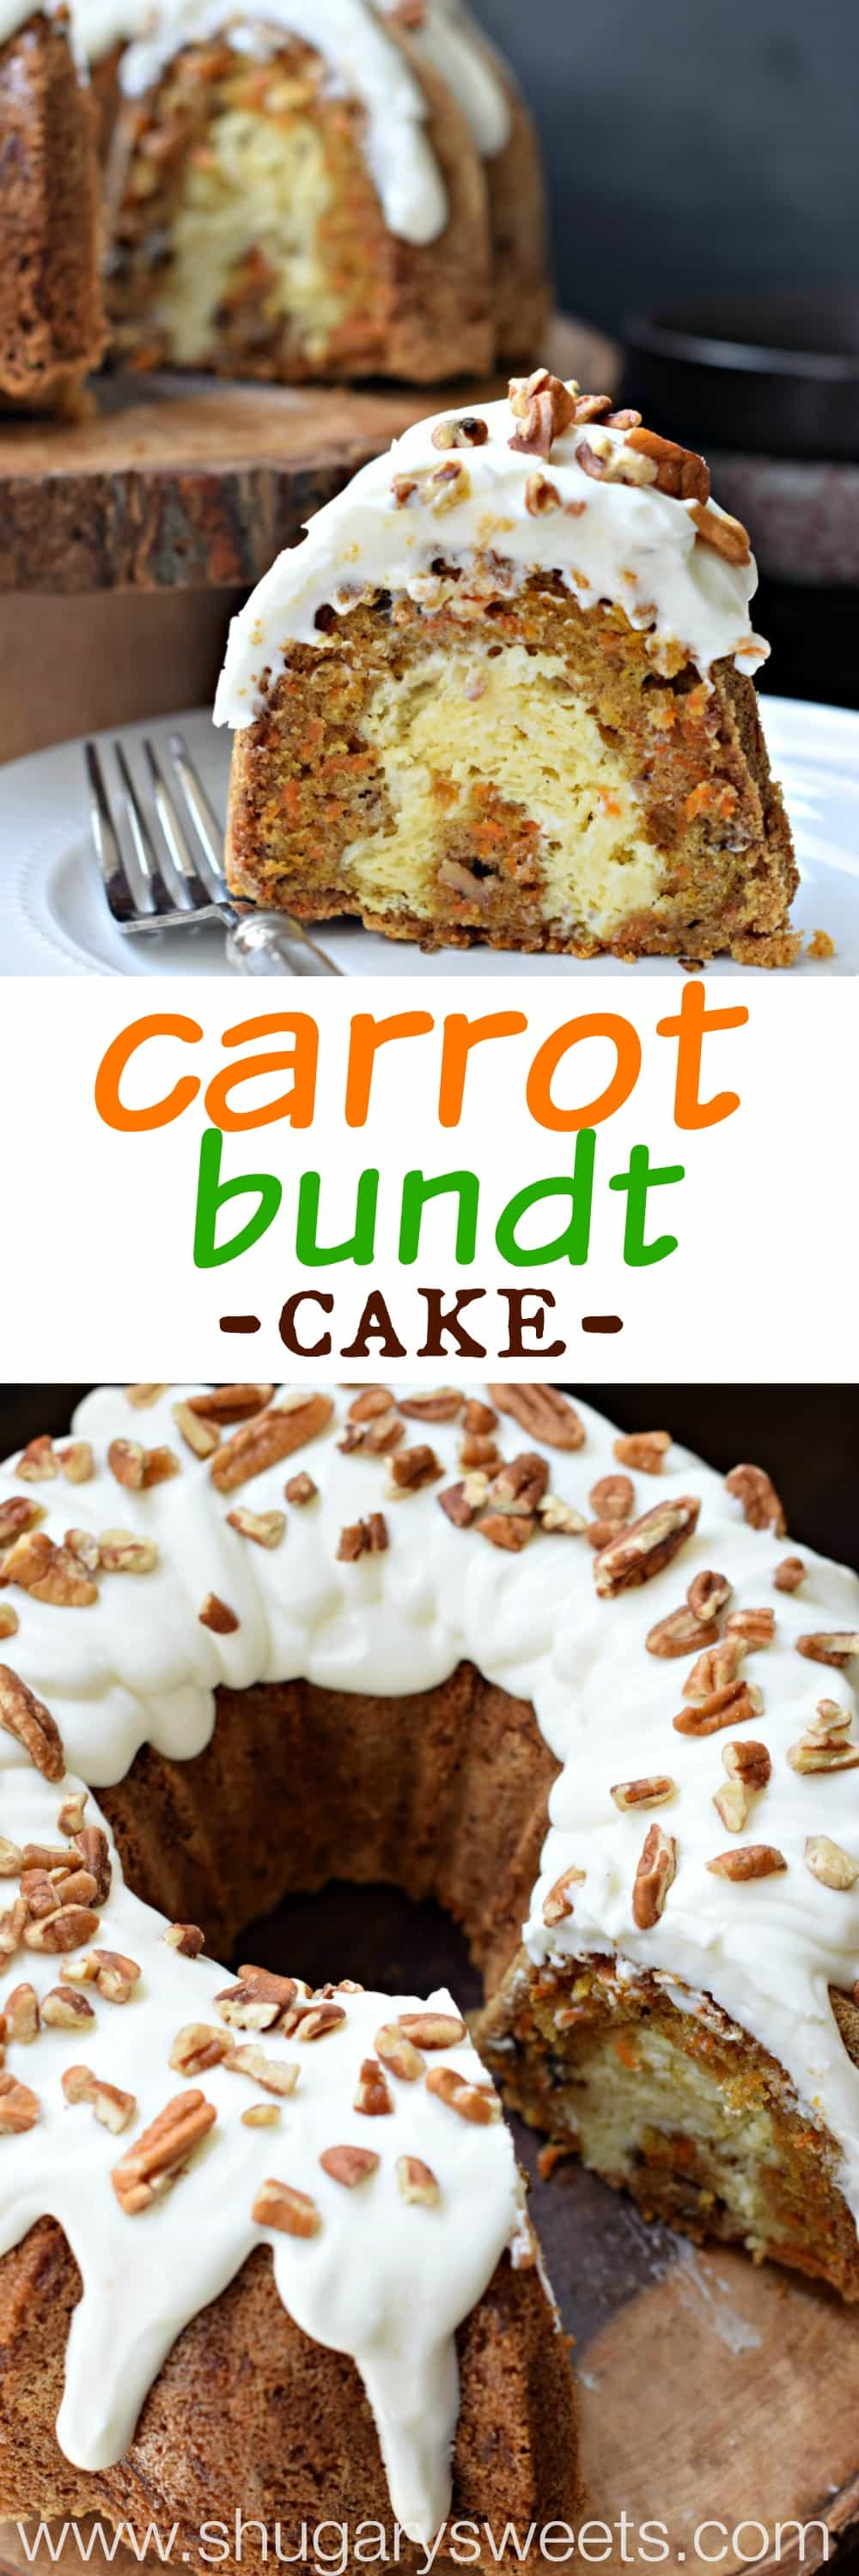 Cream Cheese Frosting For Bundt Carrot Cake